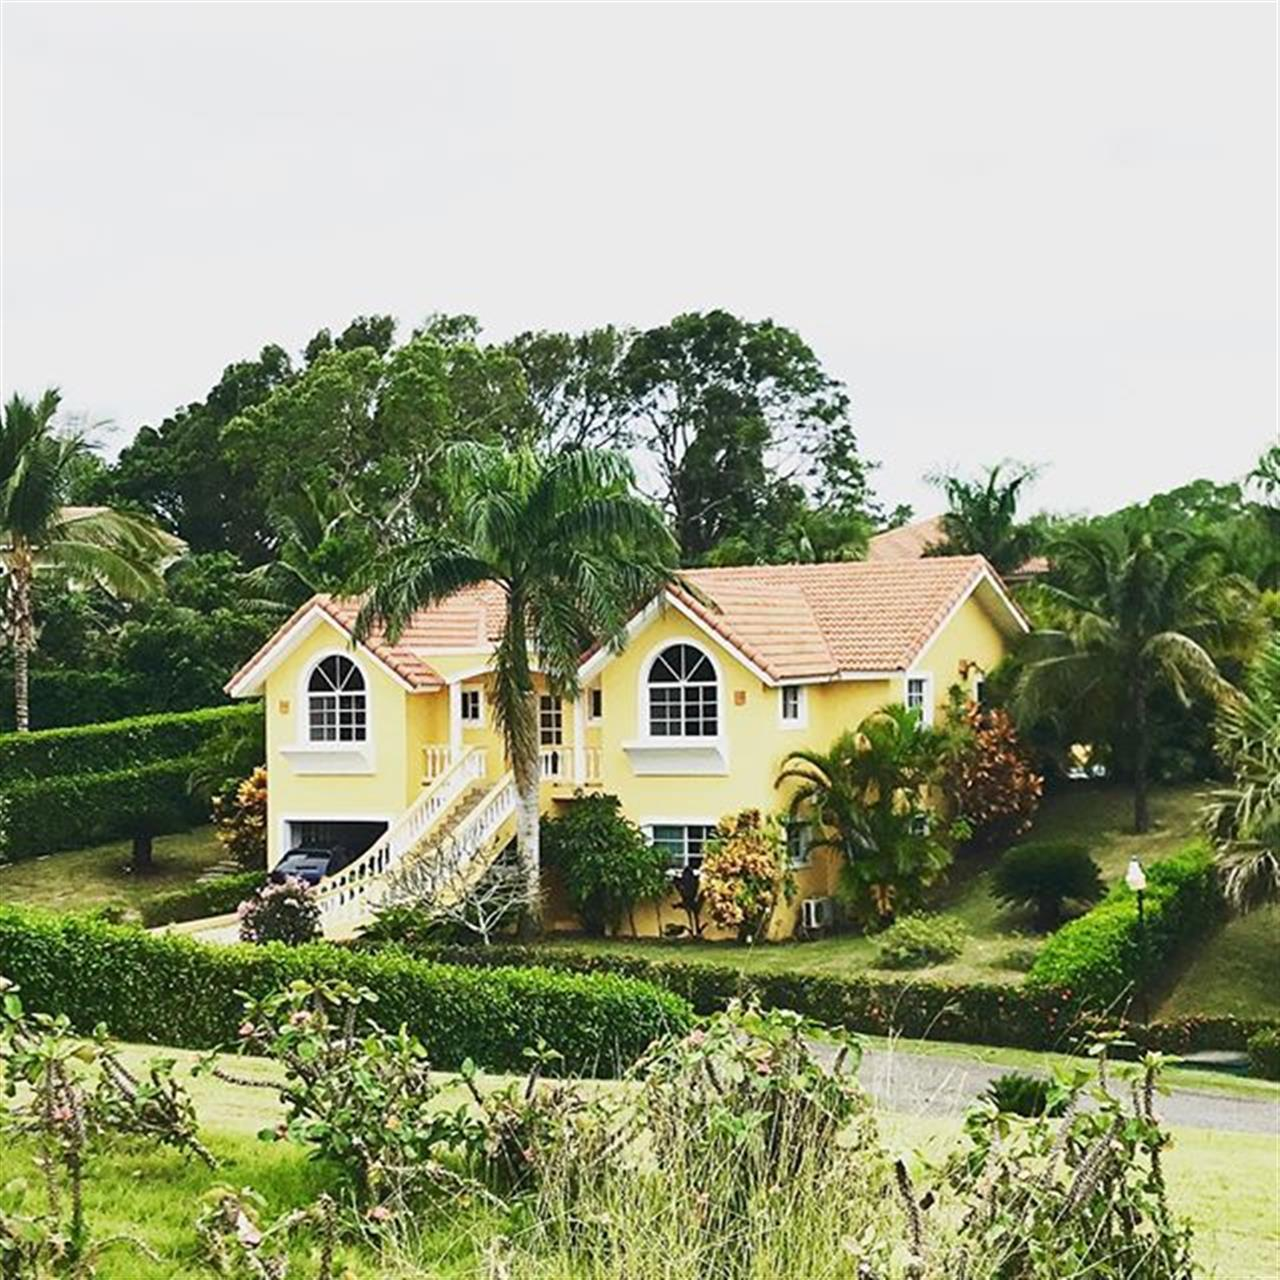 Tropical Island-style Home ? Contact us ??for more info #tropical #caribbean #island #islandstyle #caribbeanhome #dominicanbloggers #leadingrelocal #leadingre #dominicanrepublicvilla #dominicanstyle